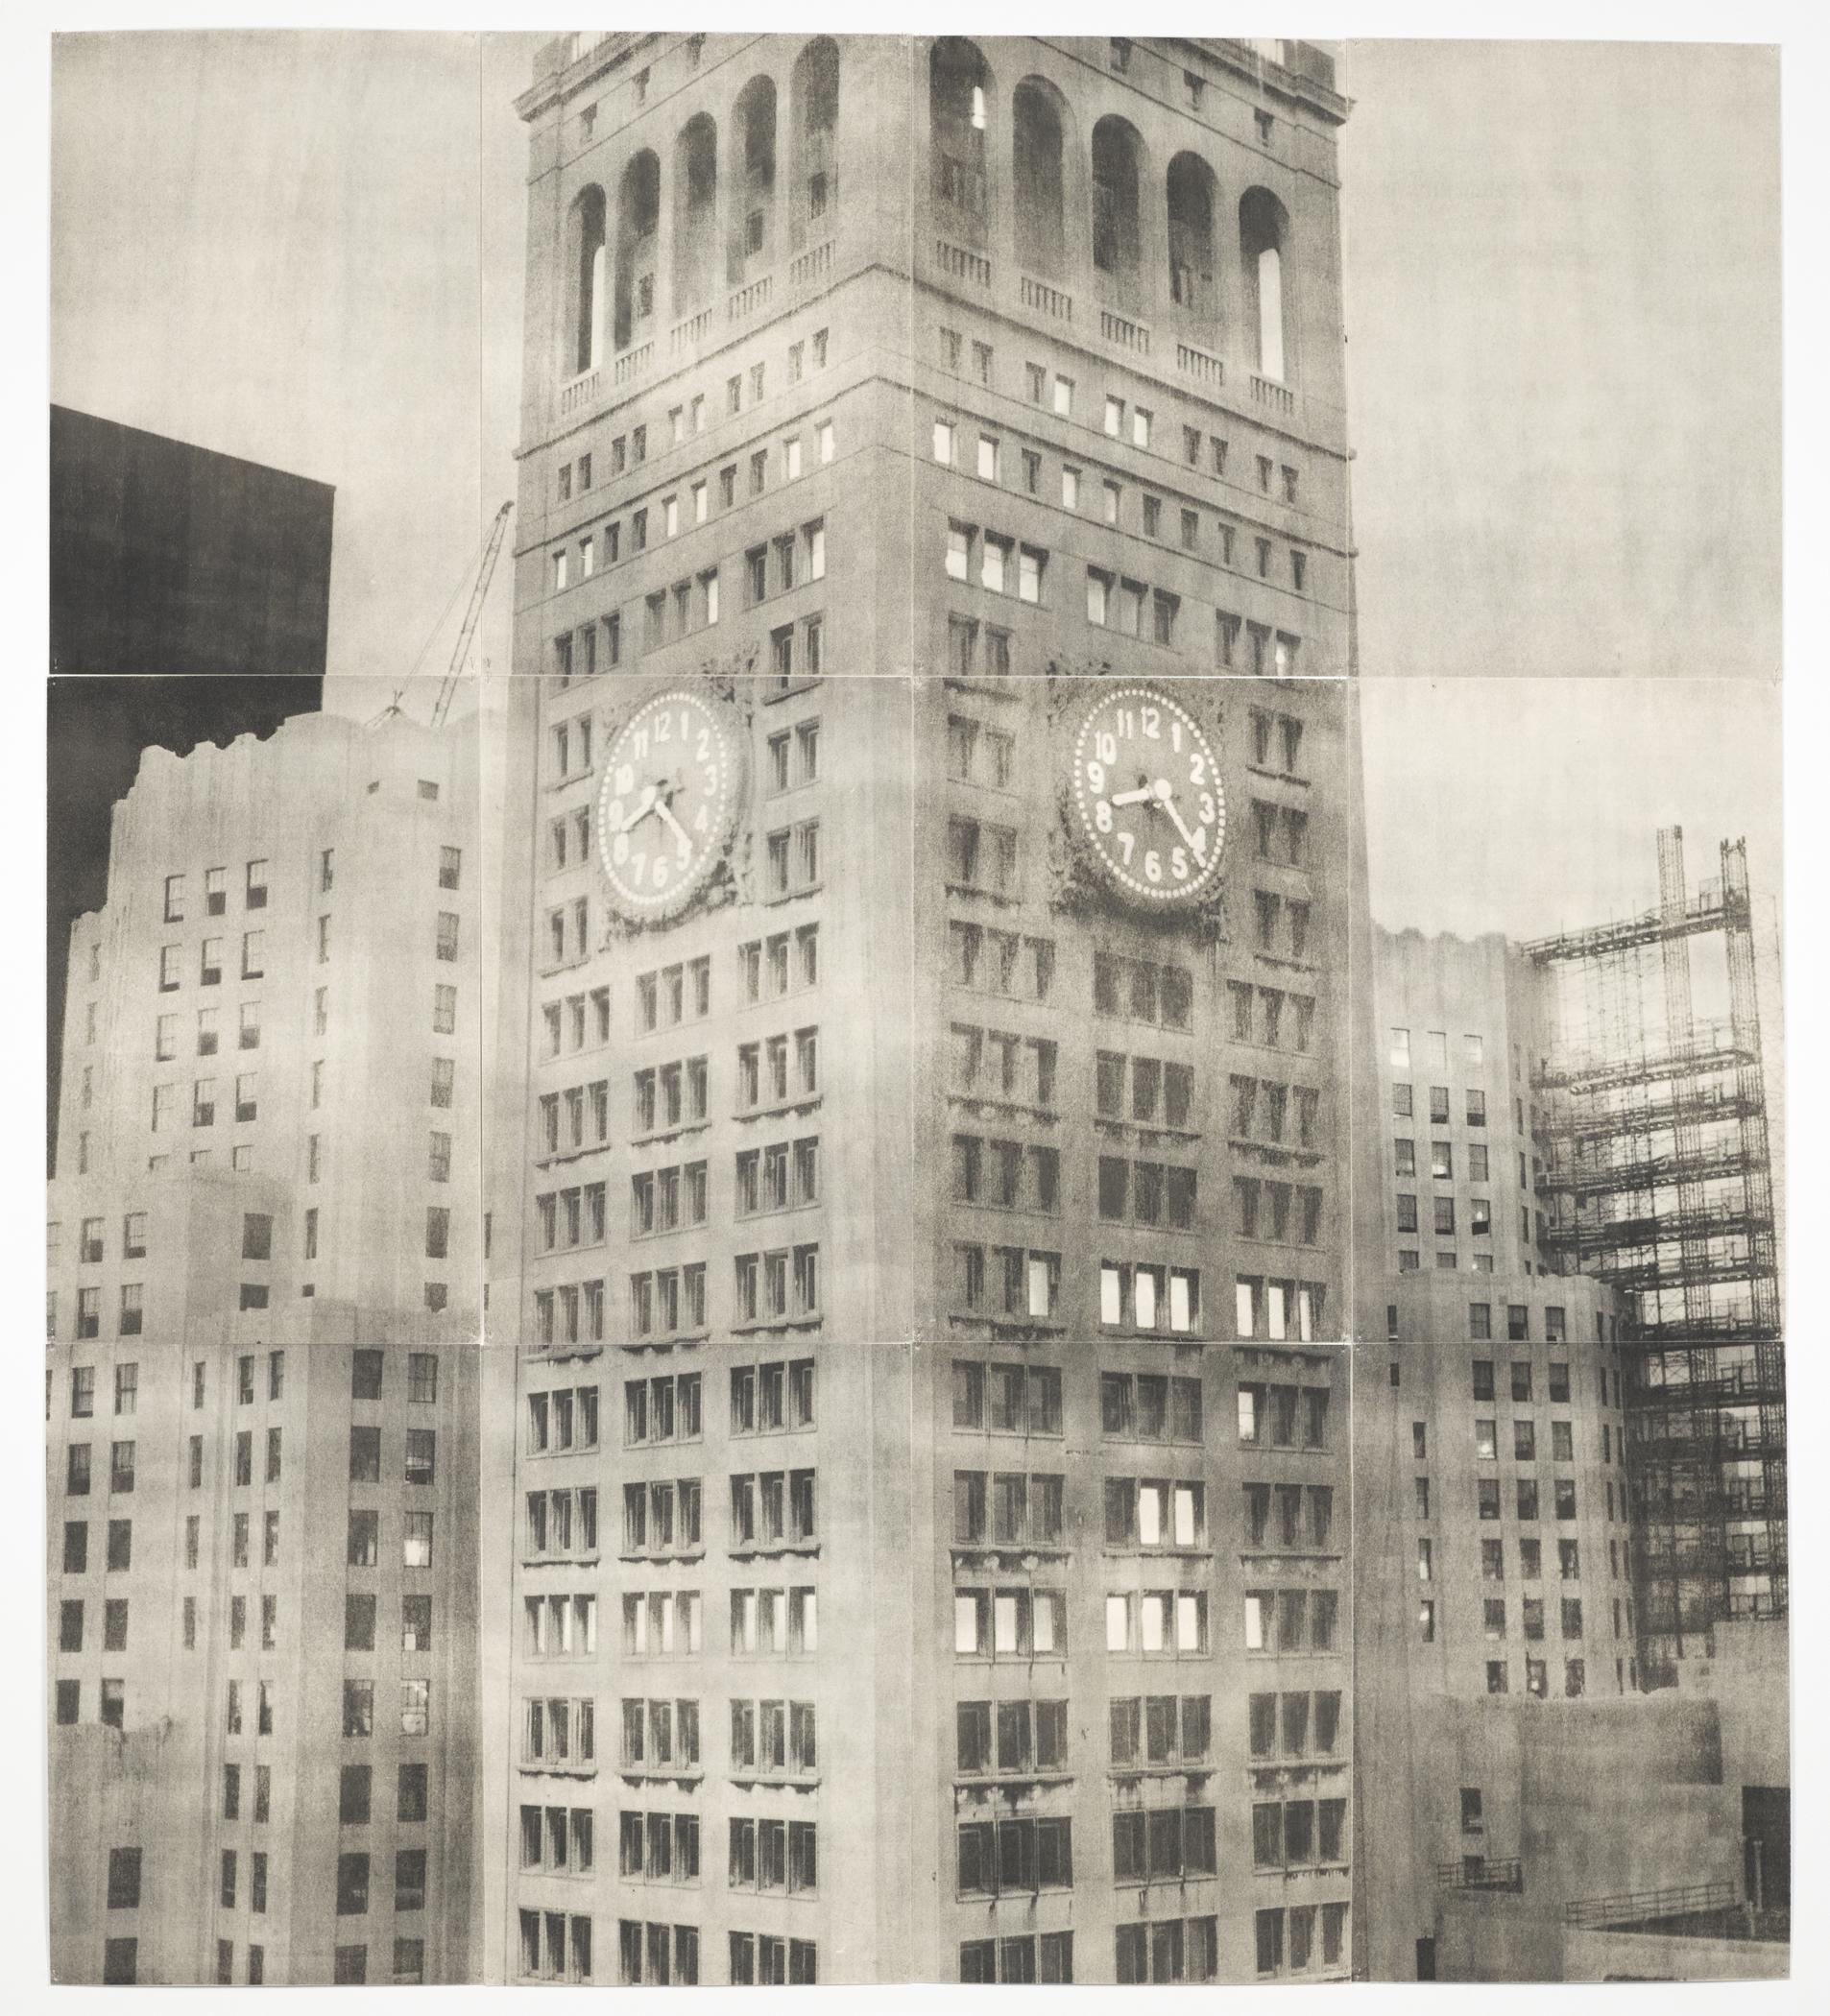 A black-and-white photo shows a clock tower among city buildings.